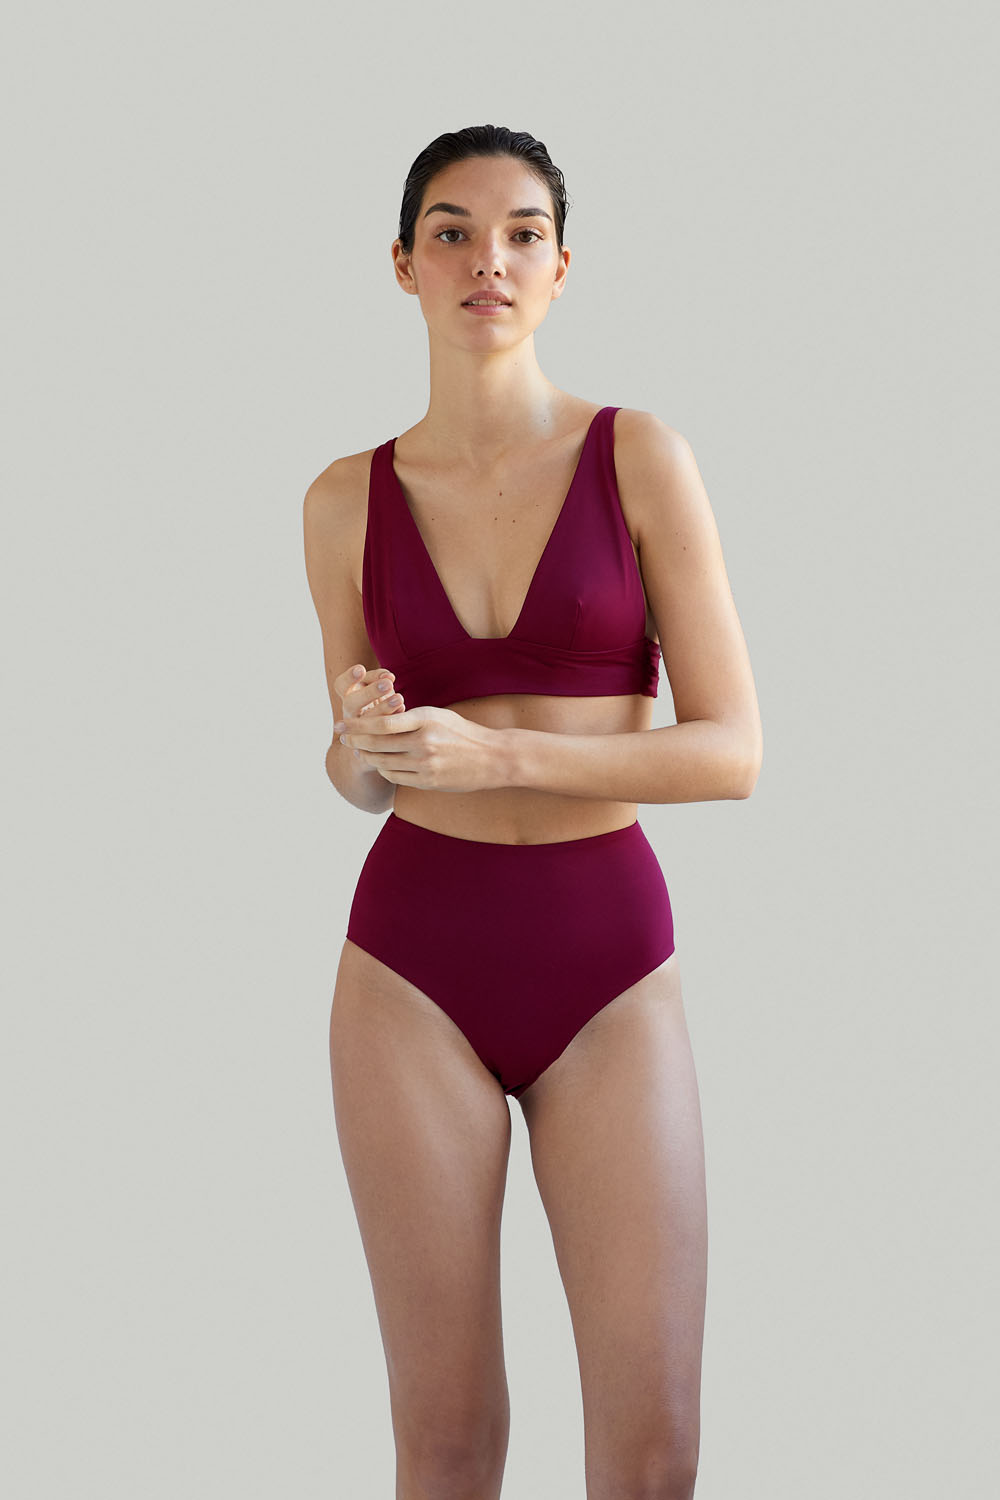 Sustainable Luxury Swimwear / Ropa de baño sostenible, eco bikini / bikini ecológico. Kapalai + Farond in pitaya, by NOW_THEN